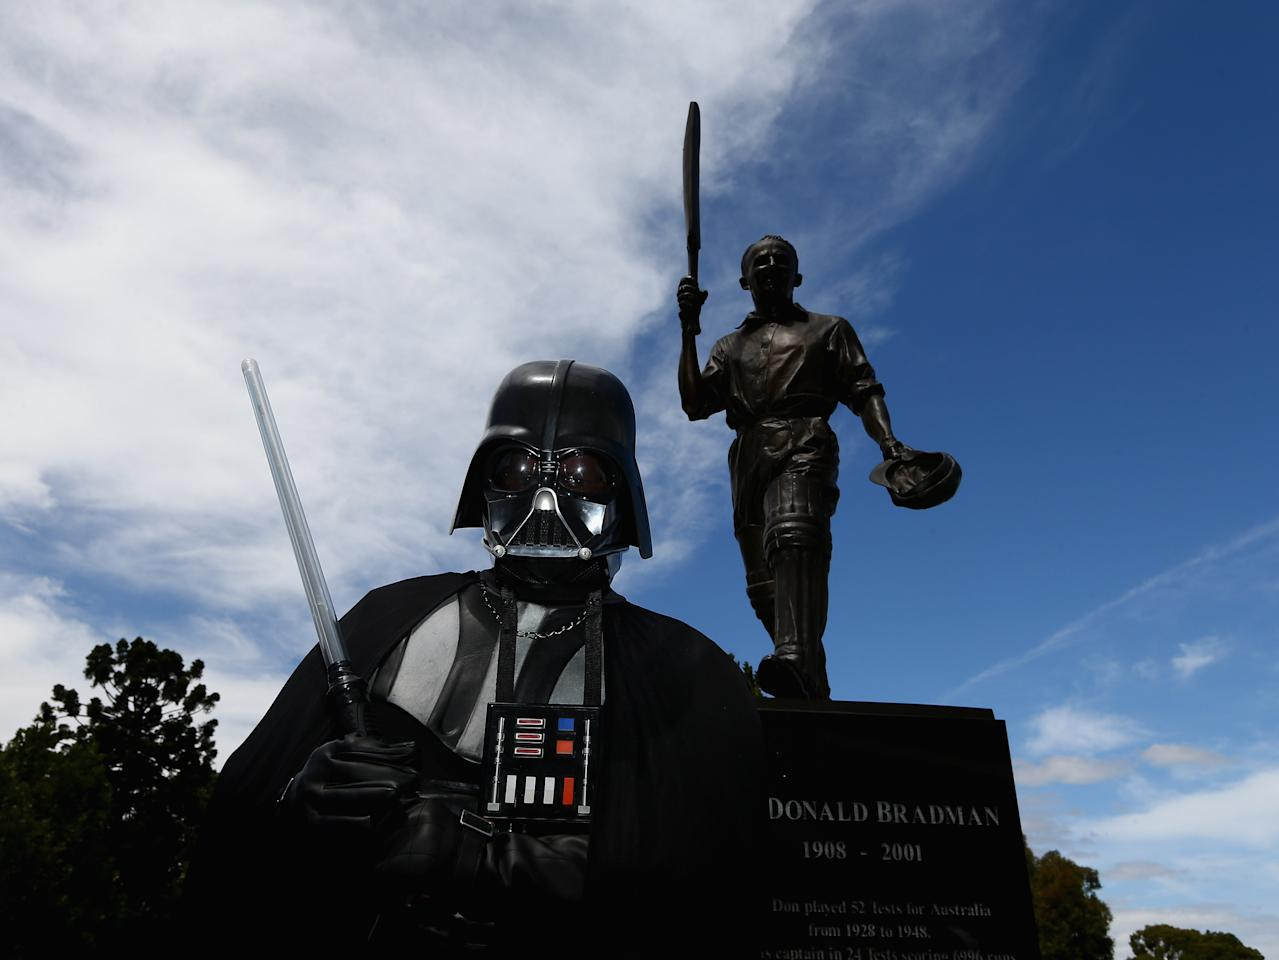 MELBOURNE, AUSTRALIA - FEBRUARY 10: A fan dressed as Darth Vader is seen prior to game five of the Commonwealth Bank International Series between Australia and the West Indies at the Melbourne Cricket Ground on February 10, 2013 in Melbourne, Australia.  (Photo by Robert Cianflone/Getty Images)